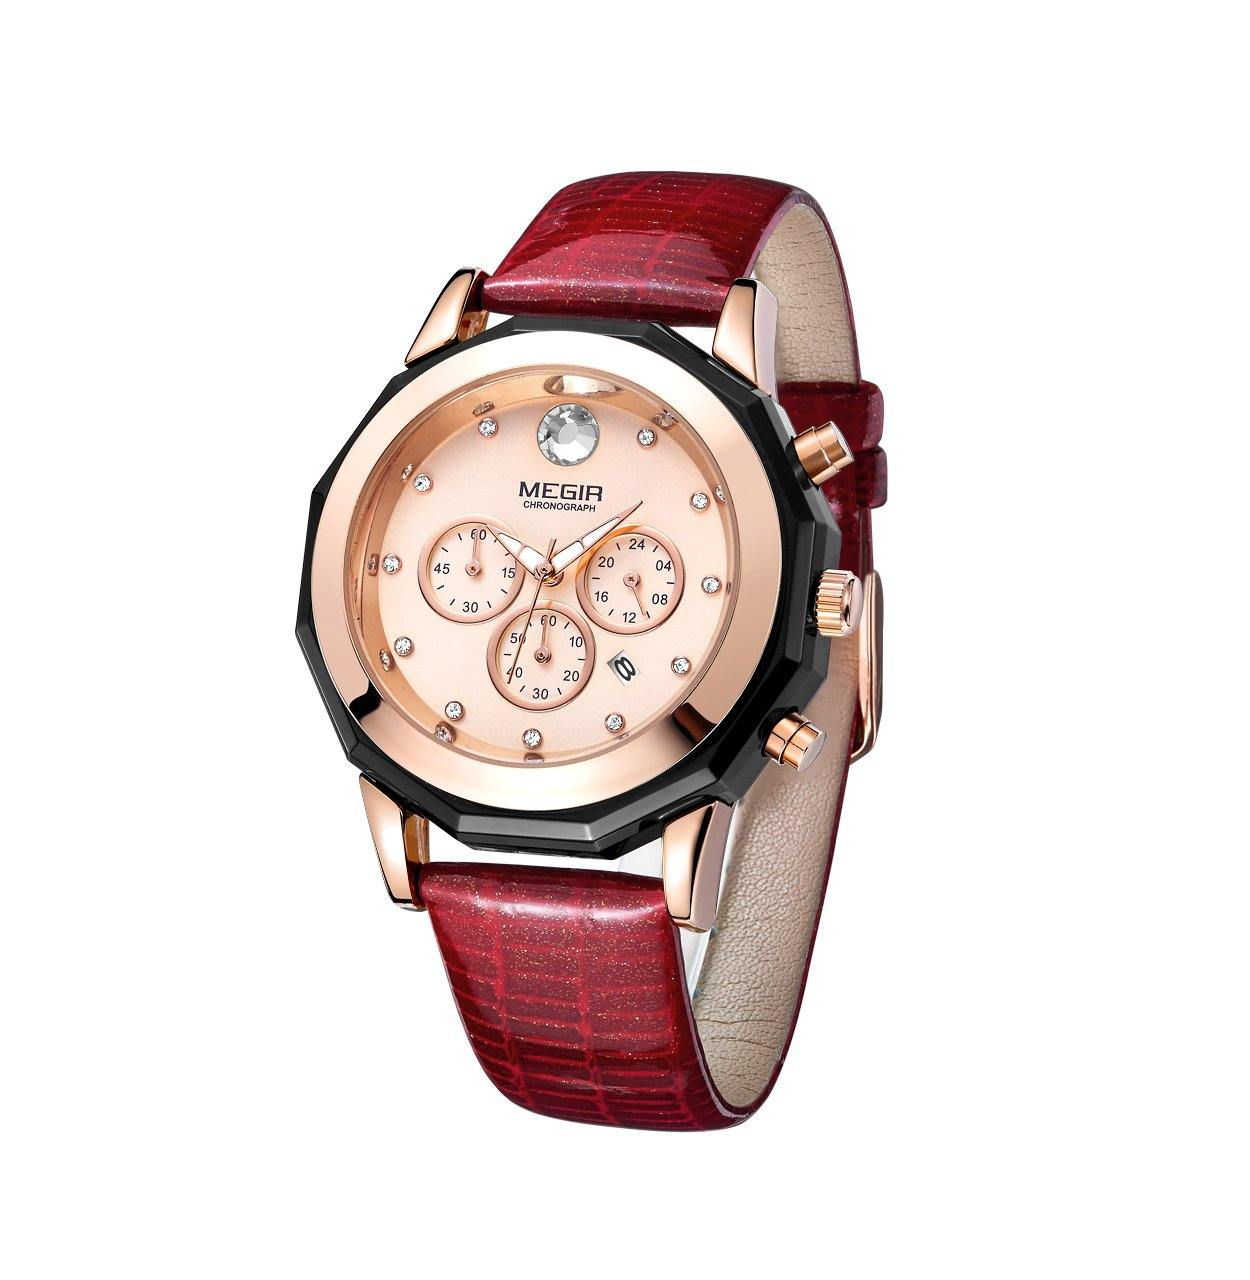 Quartz watches with red leather strap and 24-hour chronograph for women 2042 - MEGIR